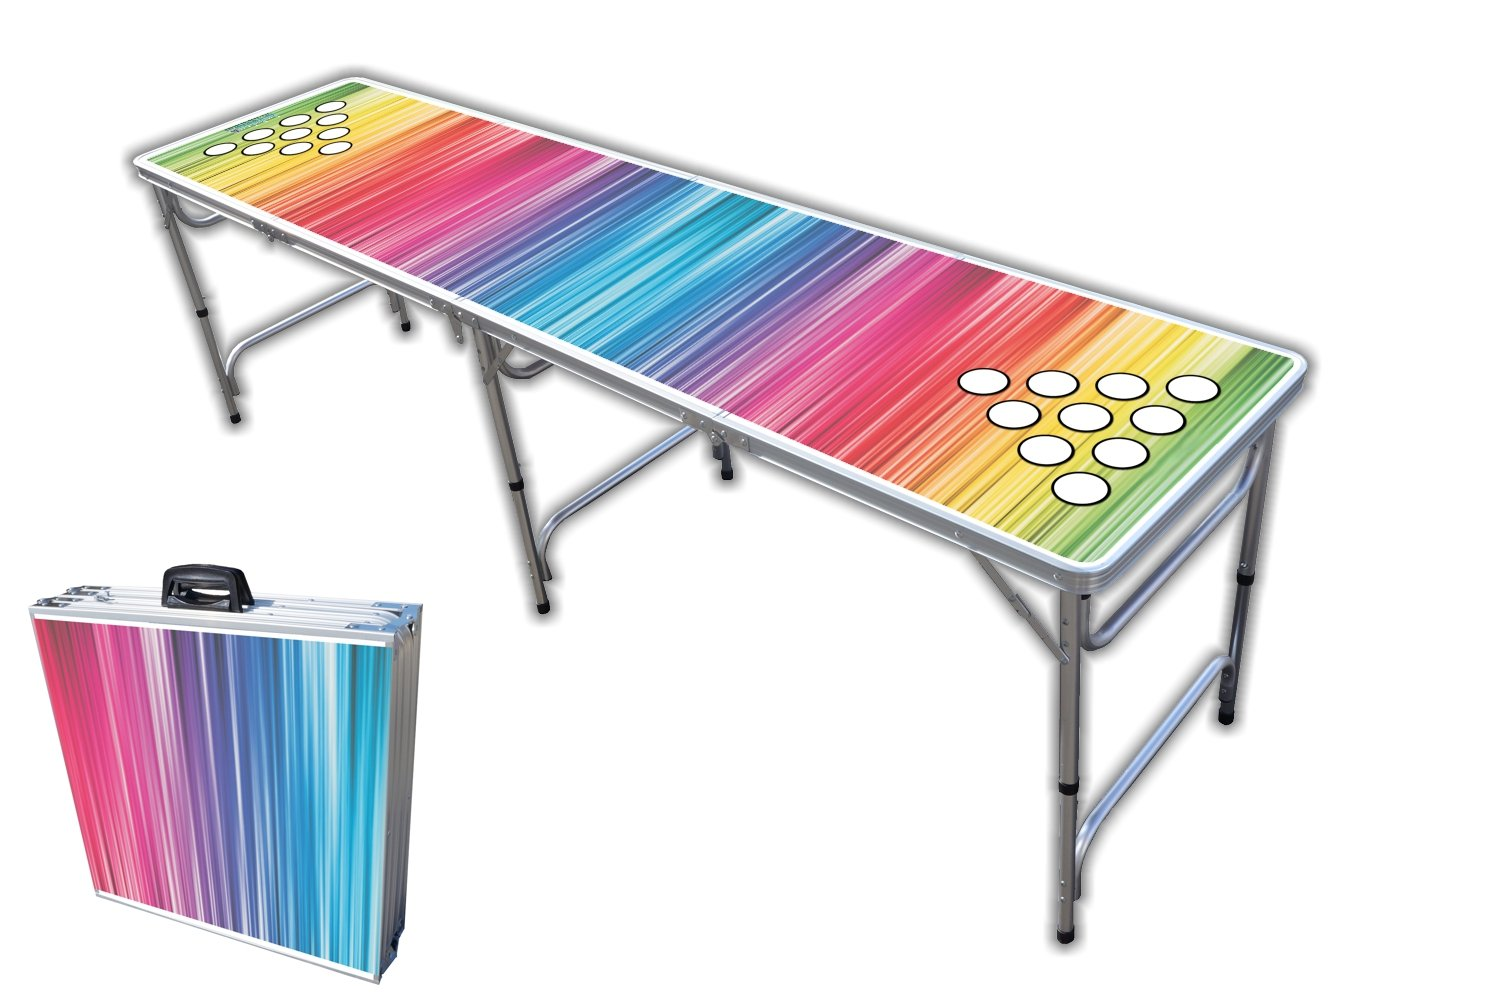 8-Foot Professional Beer Pong Table w/Holes - Color Spectrum Graphic